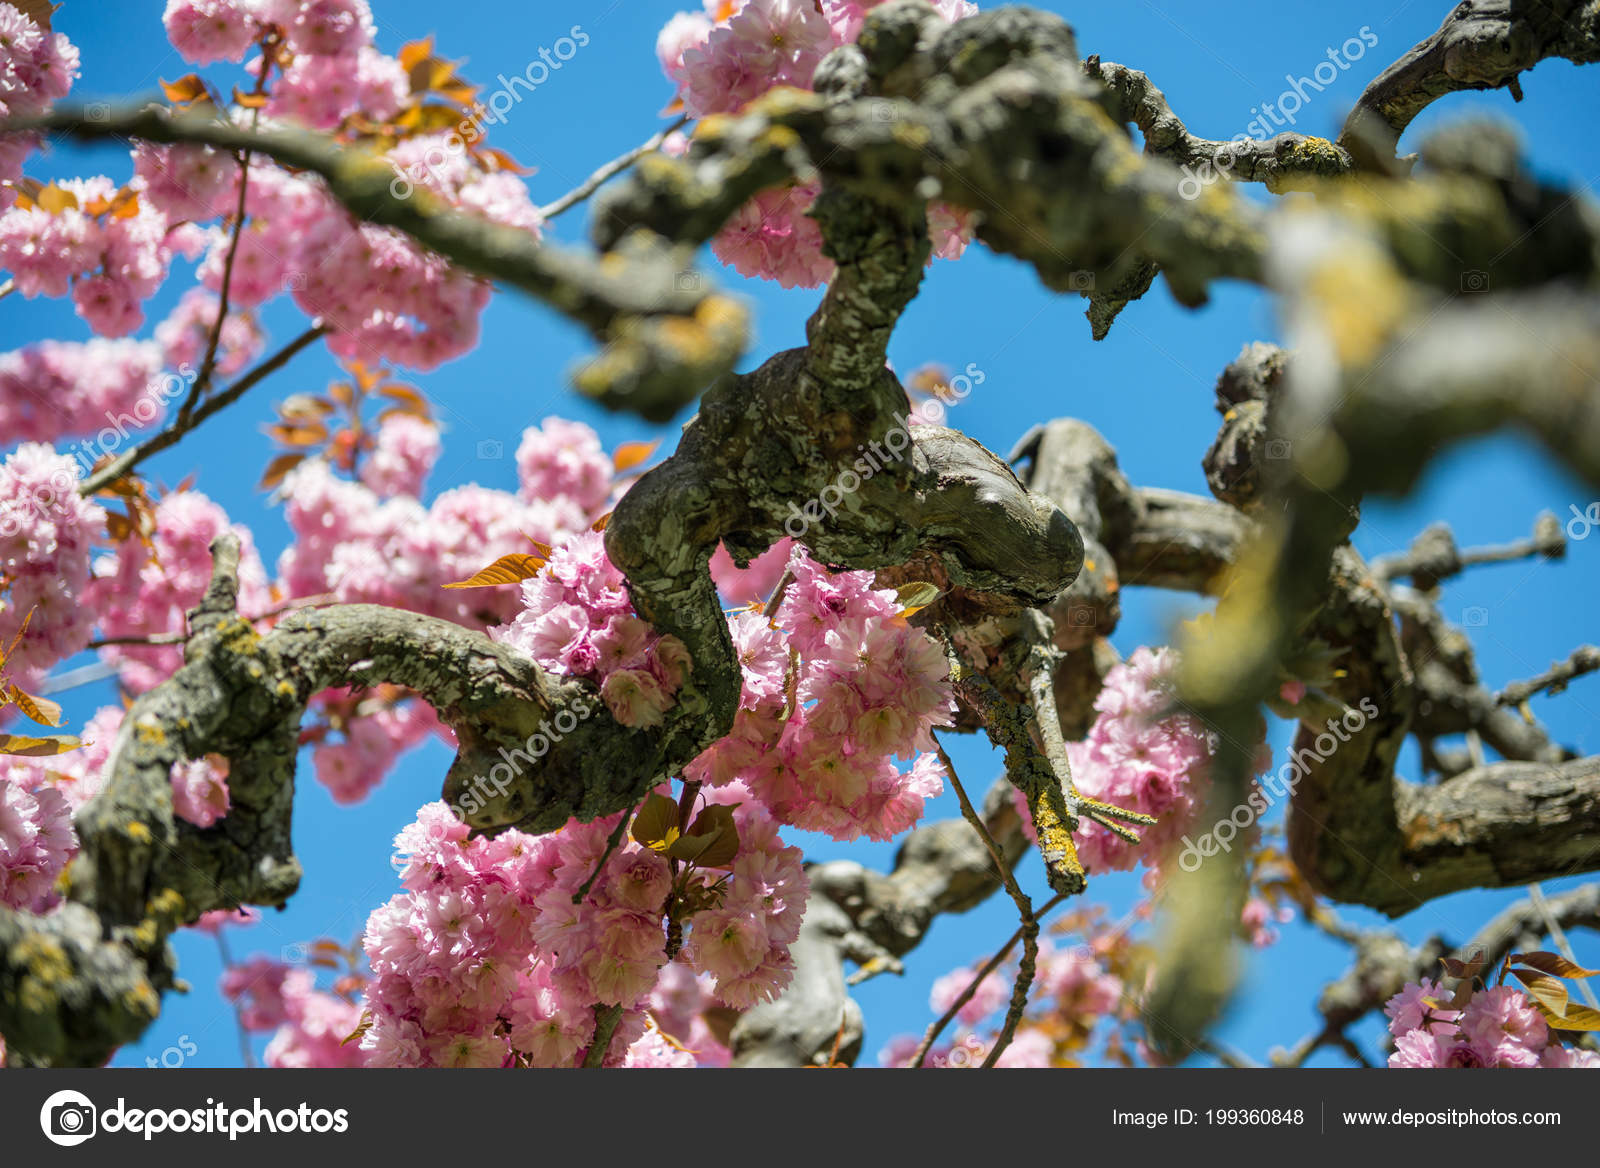 Branches sakura tree pink flowers bright blue sky stock photo branches of sakura tree with pink flowers against bright blue sky photo by viktoriasapatabo mightylinksfo